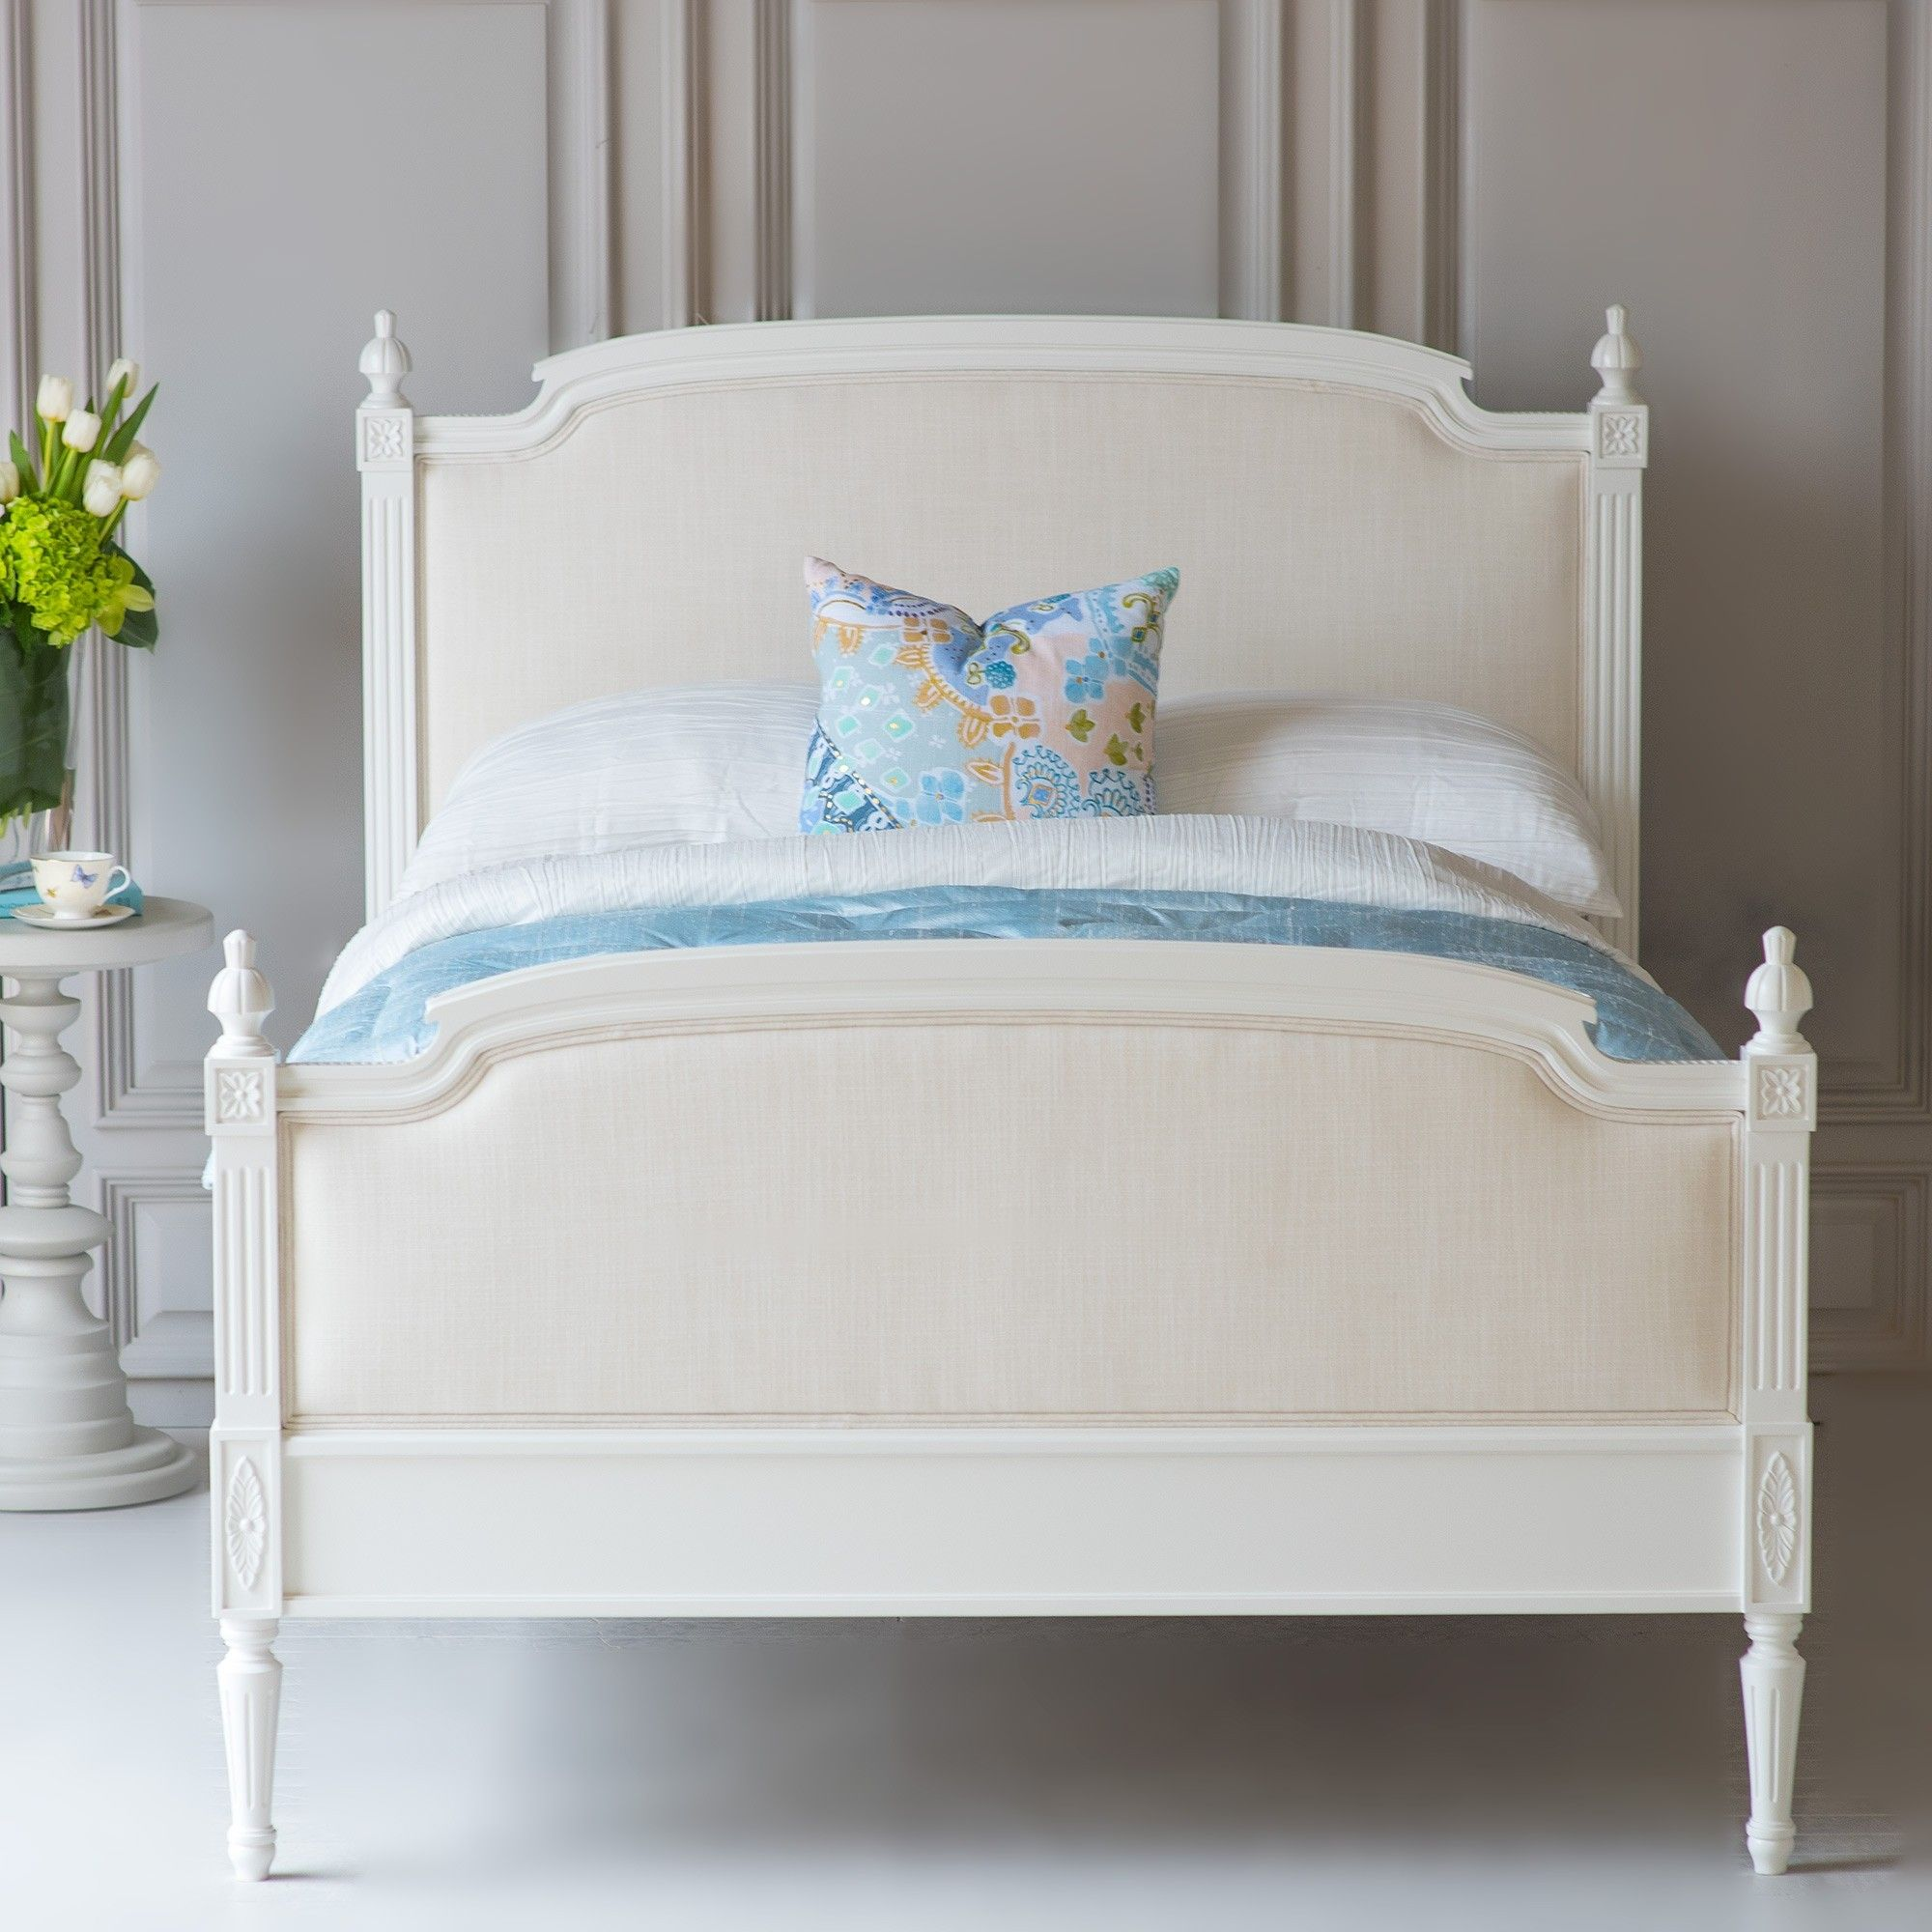 Lovely Louis Upholstered Bed Beautiful Bed Company Drd